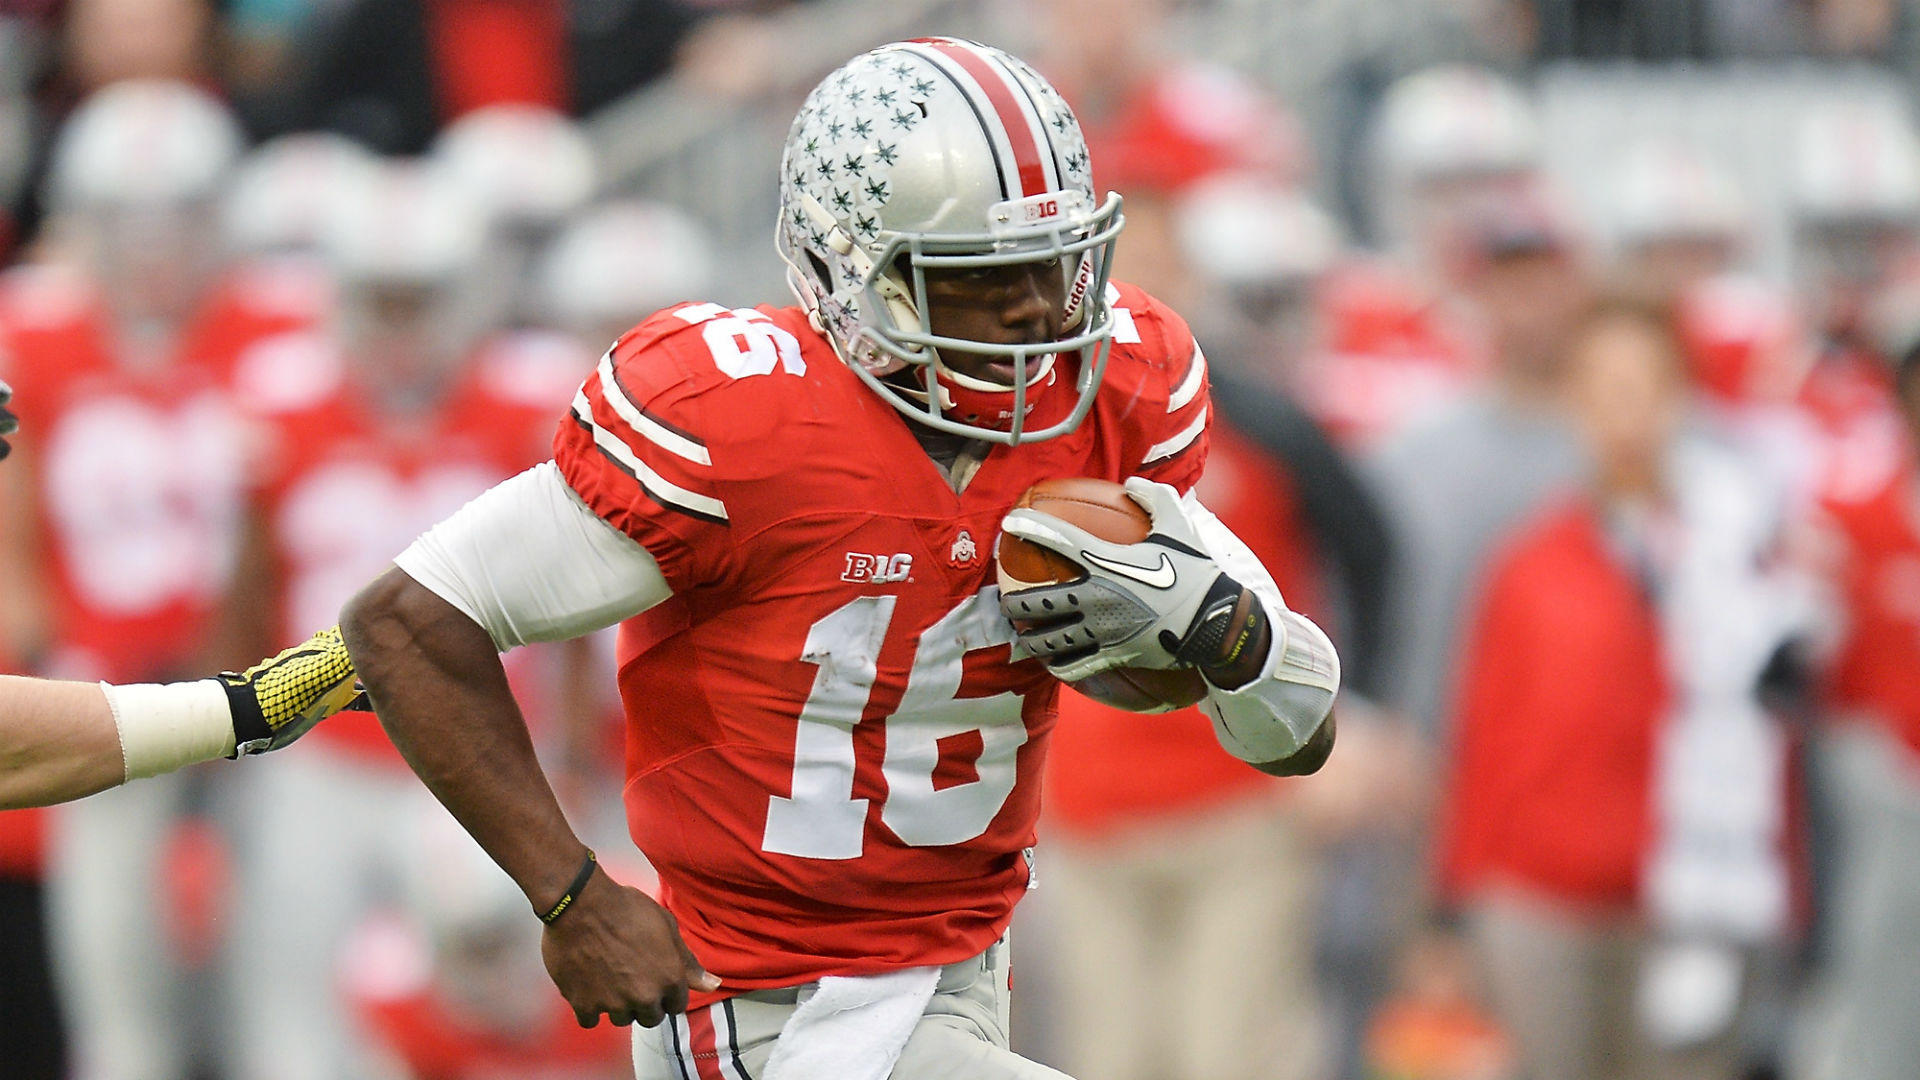 Who will start at QB for Ohio State next season? Here are mock odds